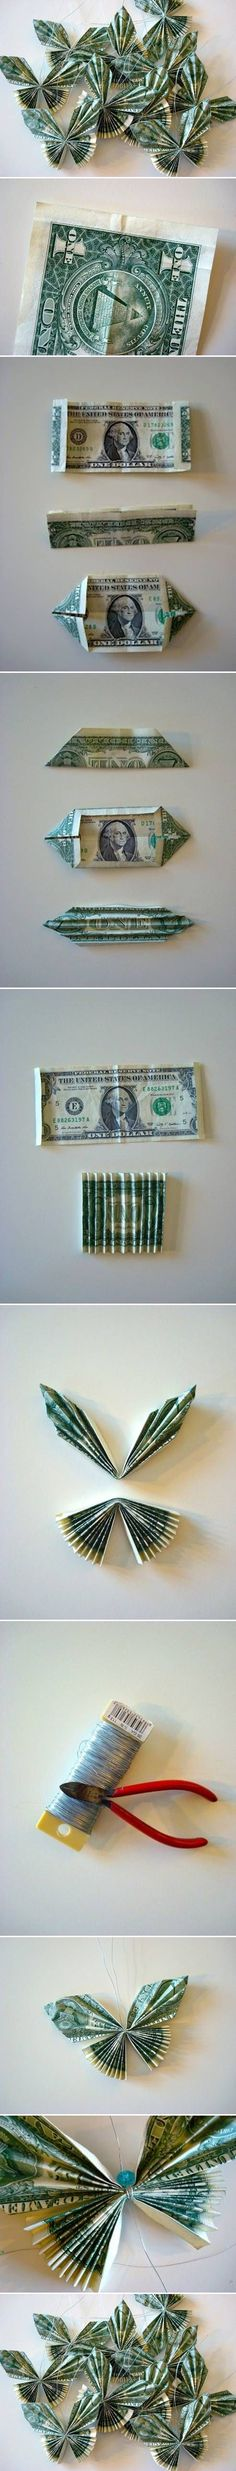 DIY Money Bill Butterfly DIY Projects | UsefulDIY.com